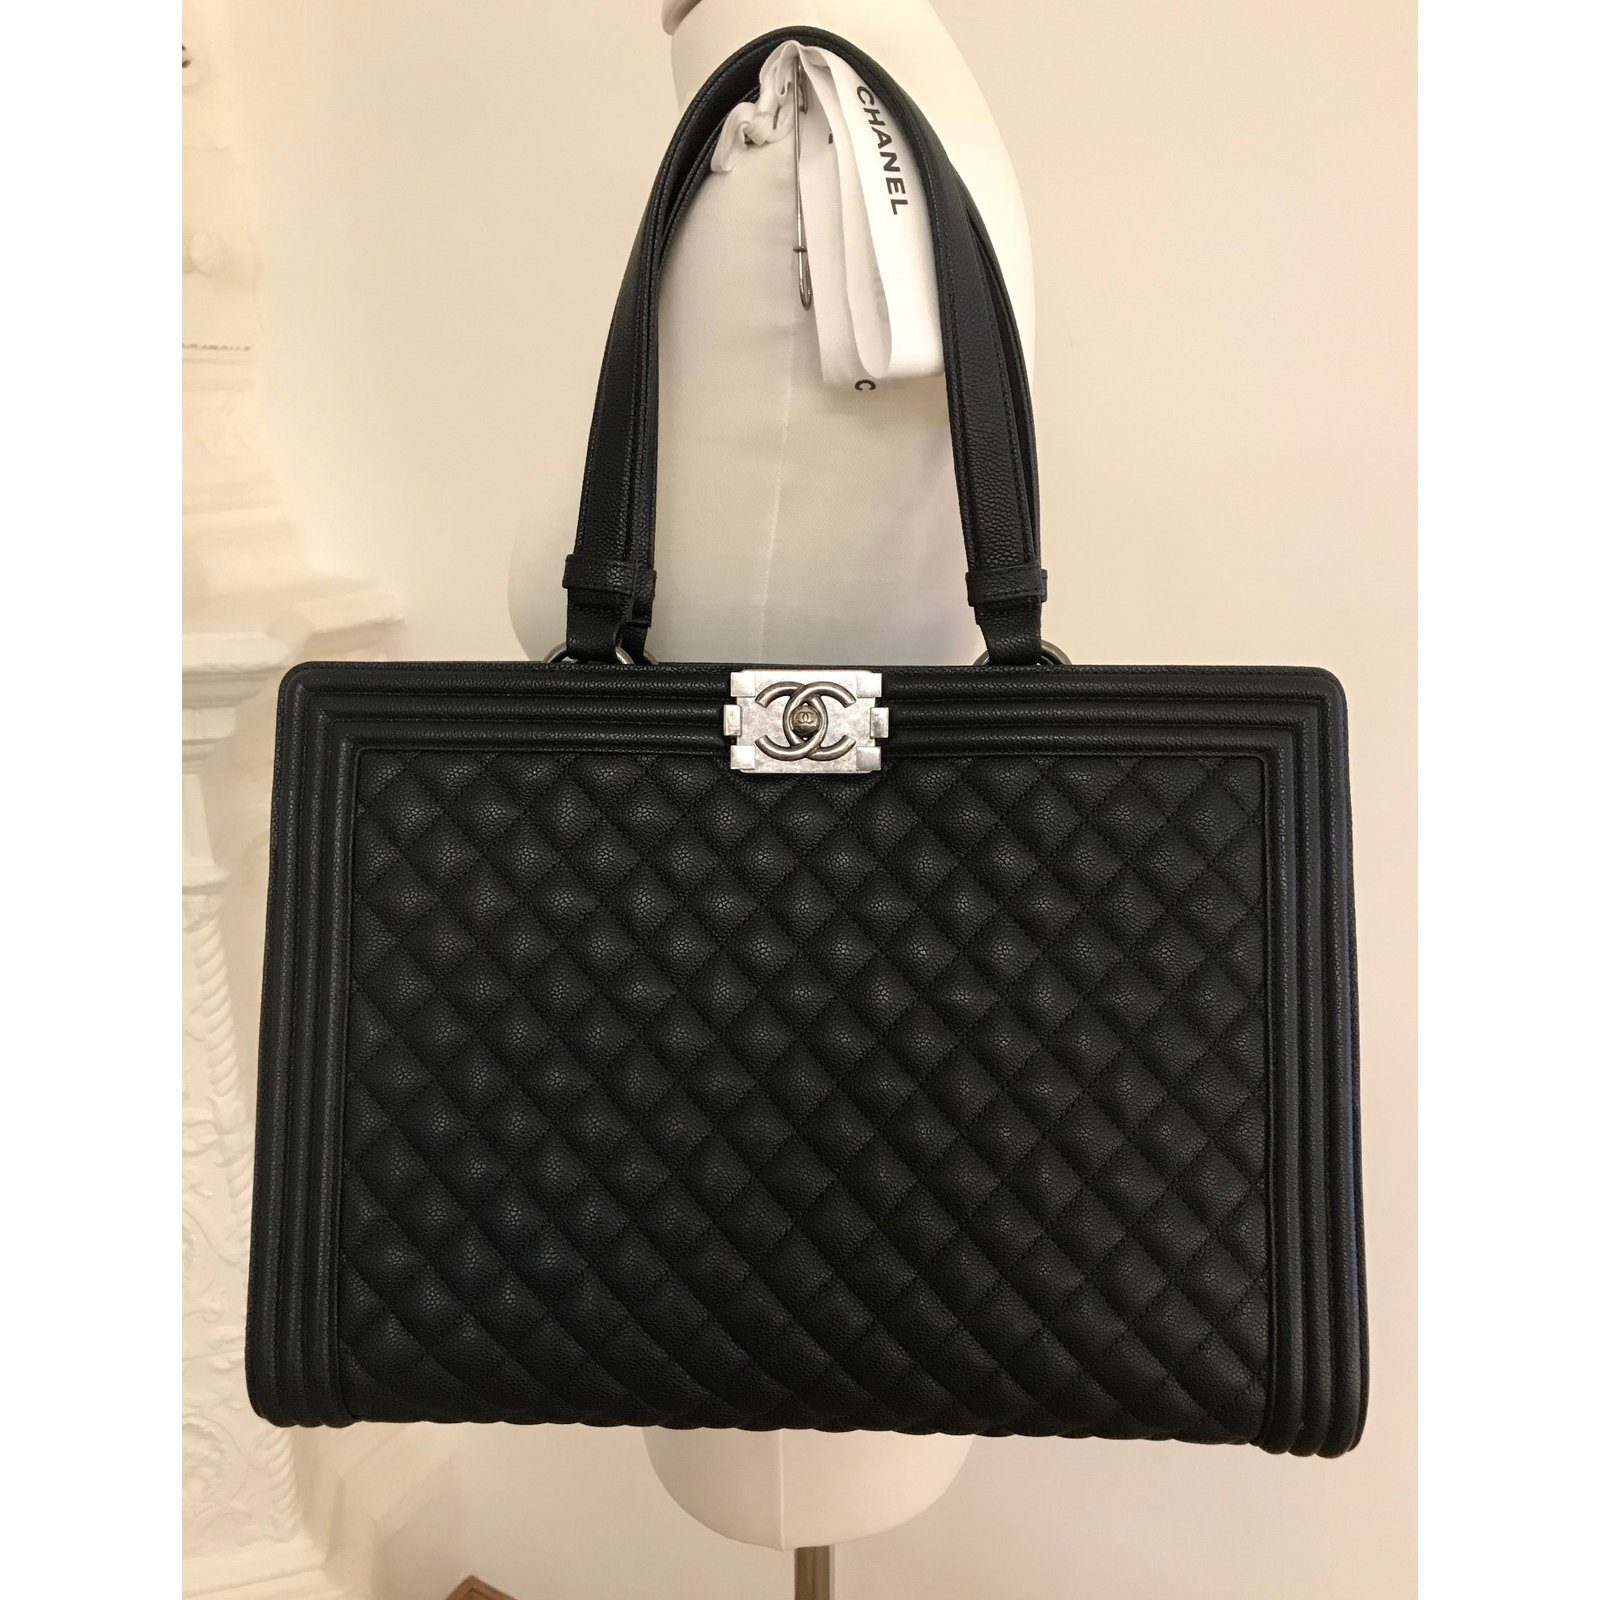 0499f308cadb Chanel CHANEL Black Quilted Calfskin Boy Large Shopping Tote Bag in ...